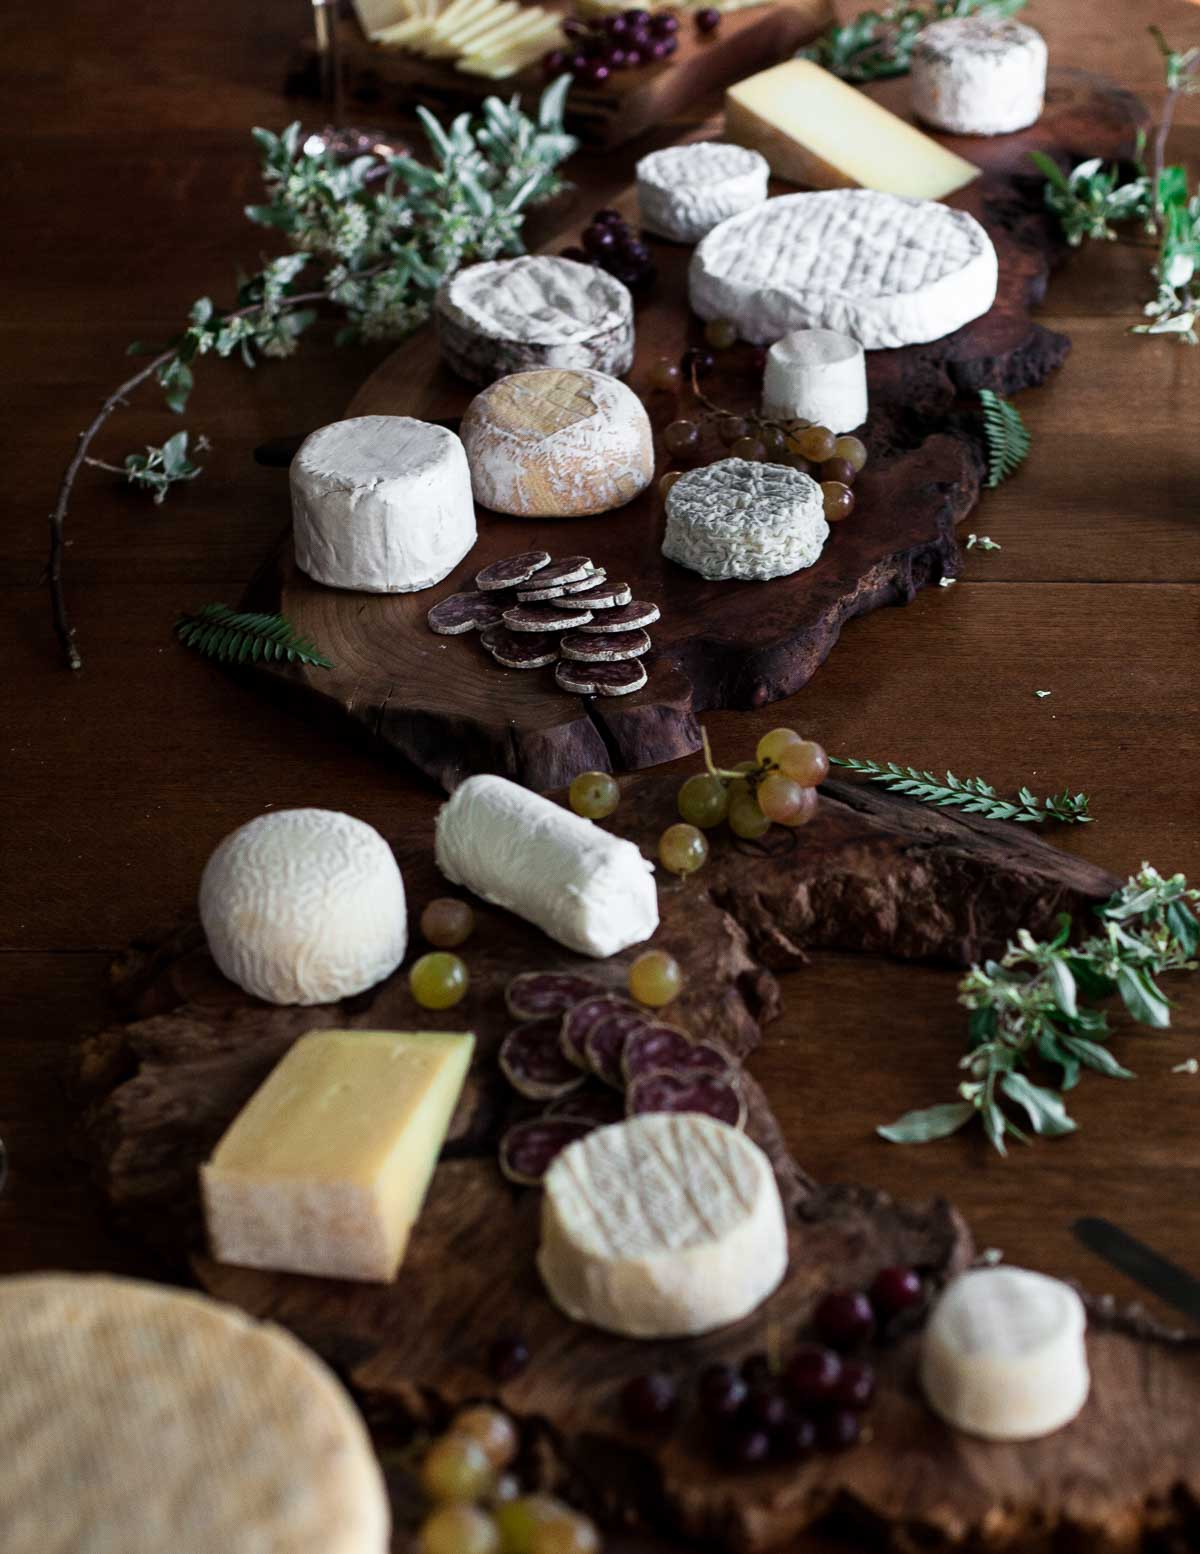 Cape Cod Food Photography & Cheesemaking Workshop | acalculatedwhisk.com